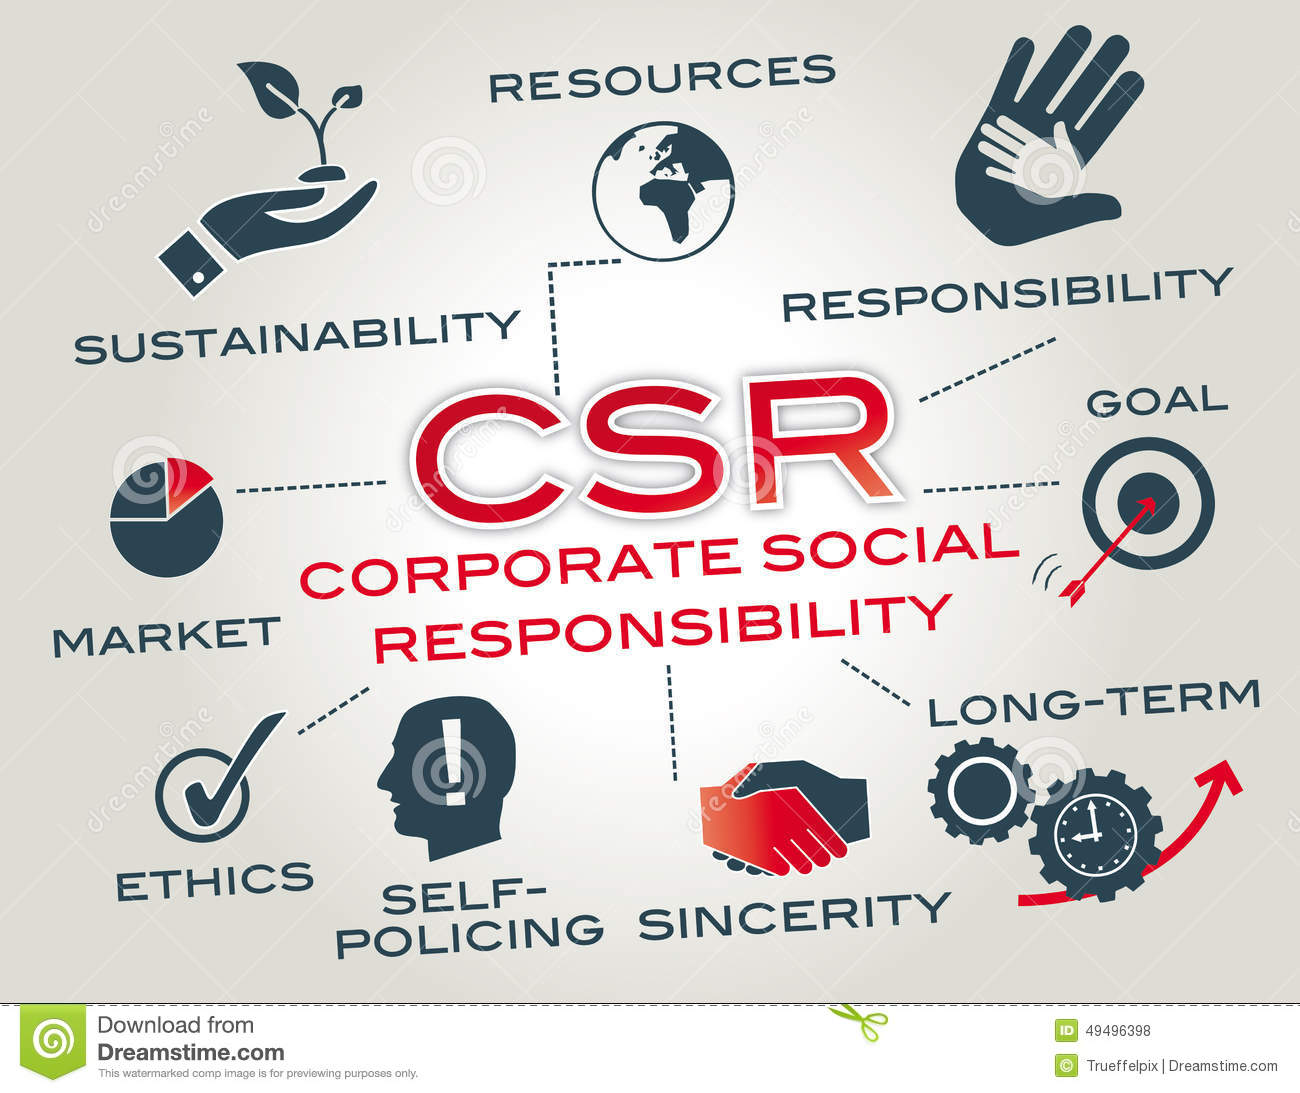 corporate social responsibility in automotive industry Responsibility in the automotive industry - an explorative study authors: shwan haghandish per ingelgård corporate social responsibility.